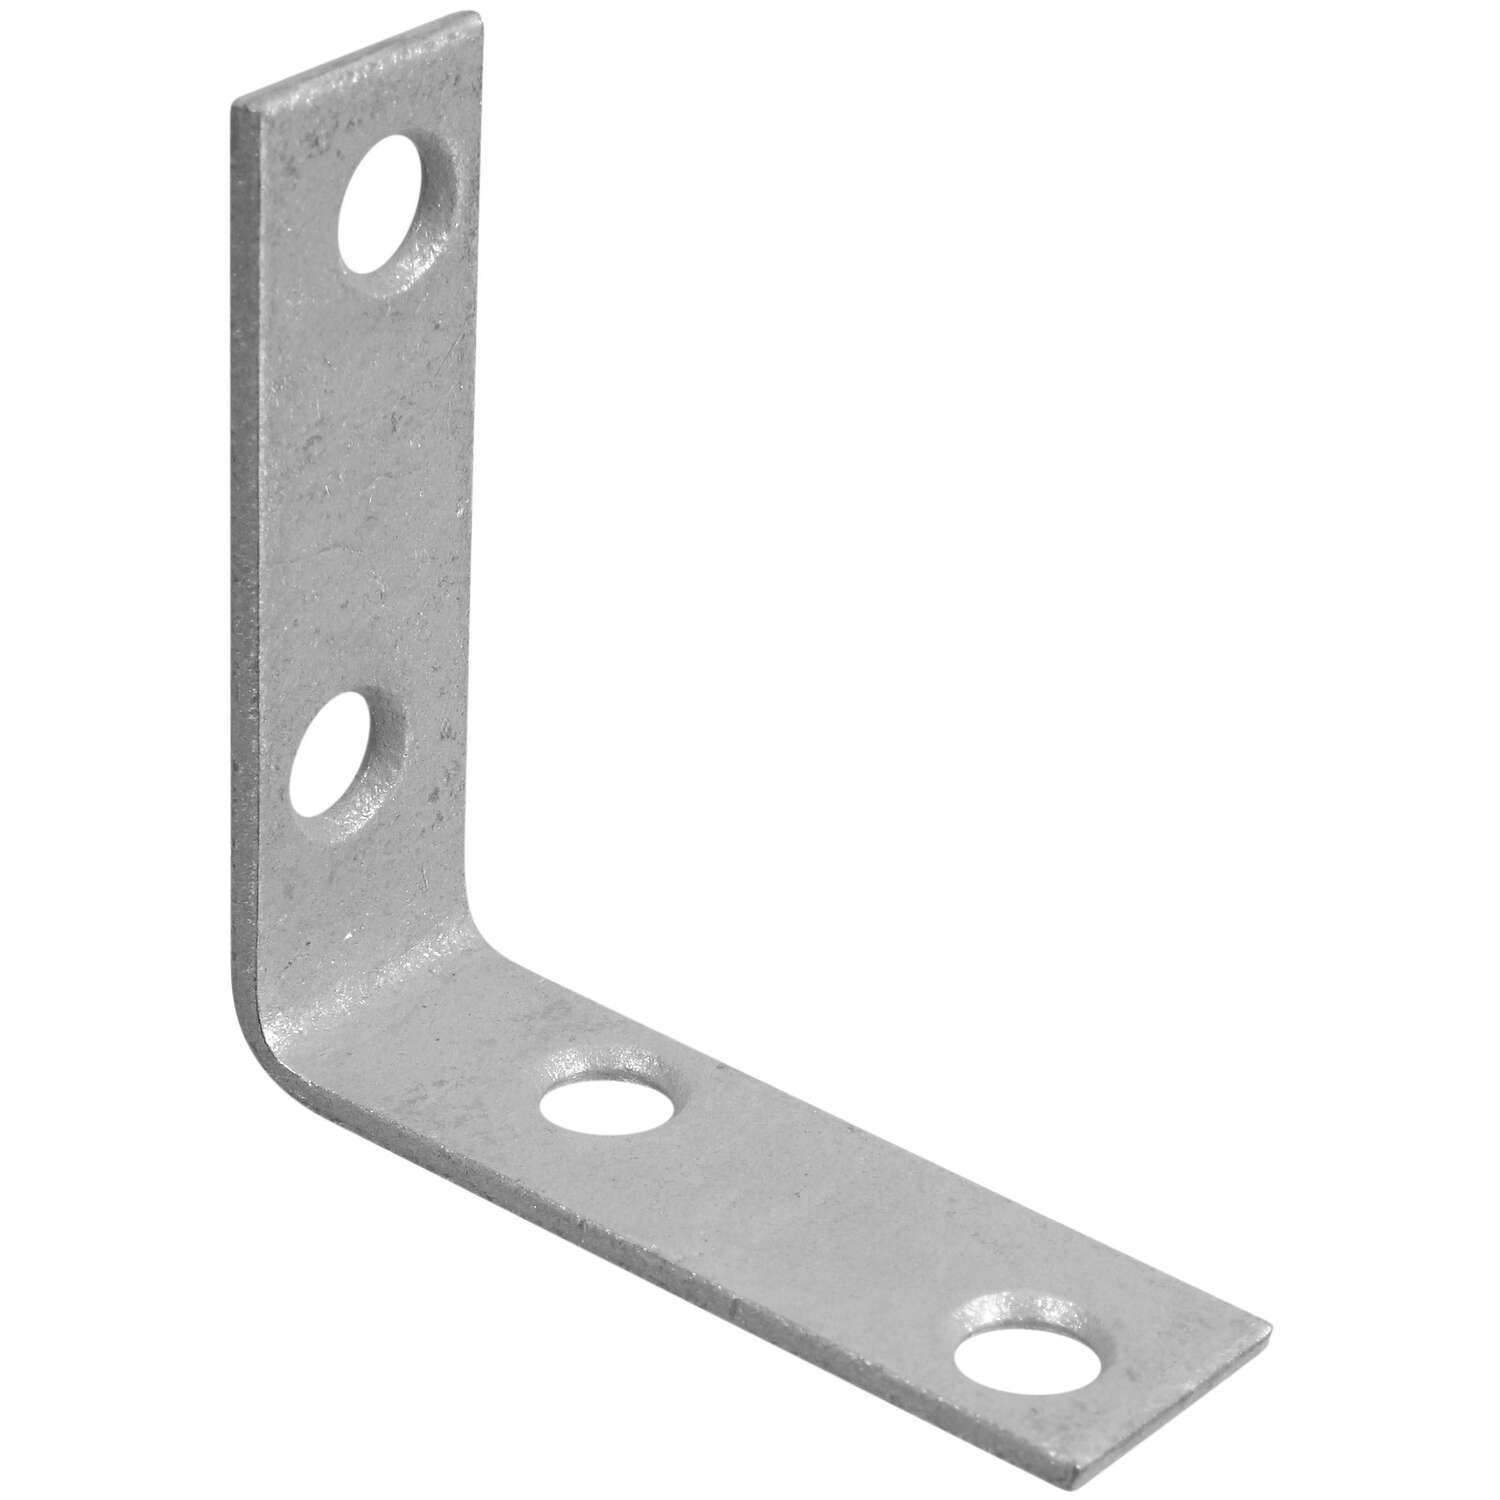 National Hardware  2.08 in. H x .62 in. W x 0.08 in. D Steel  Inside  Corner Brace